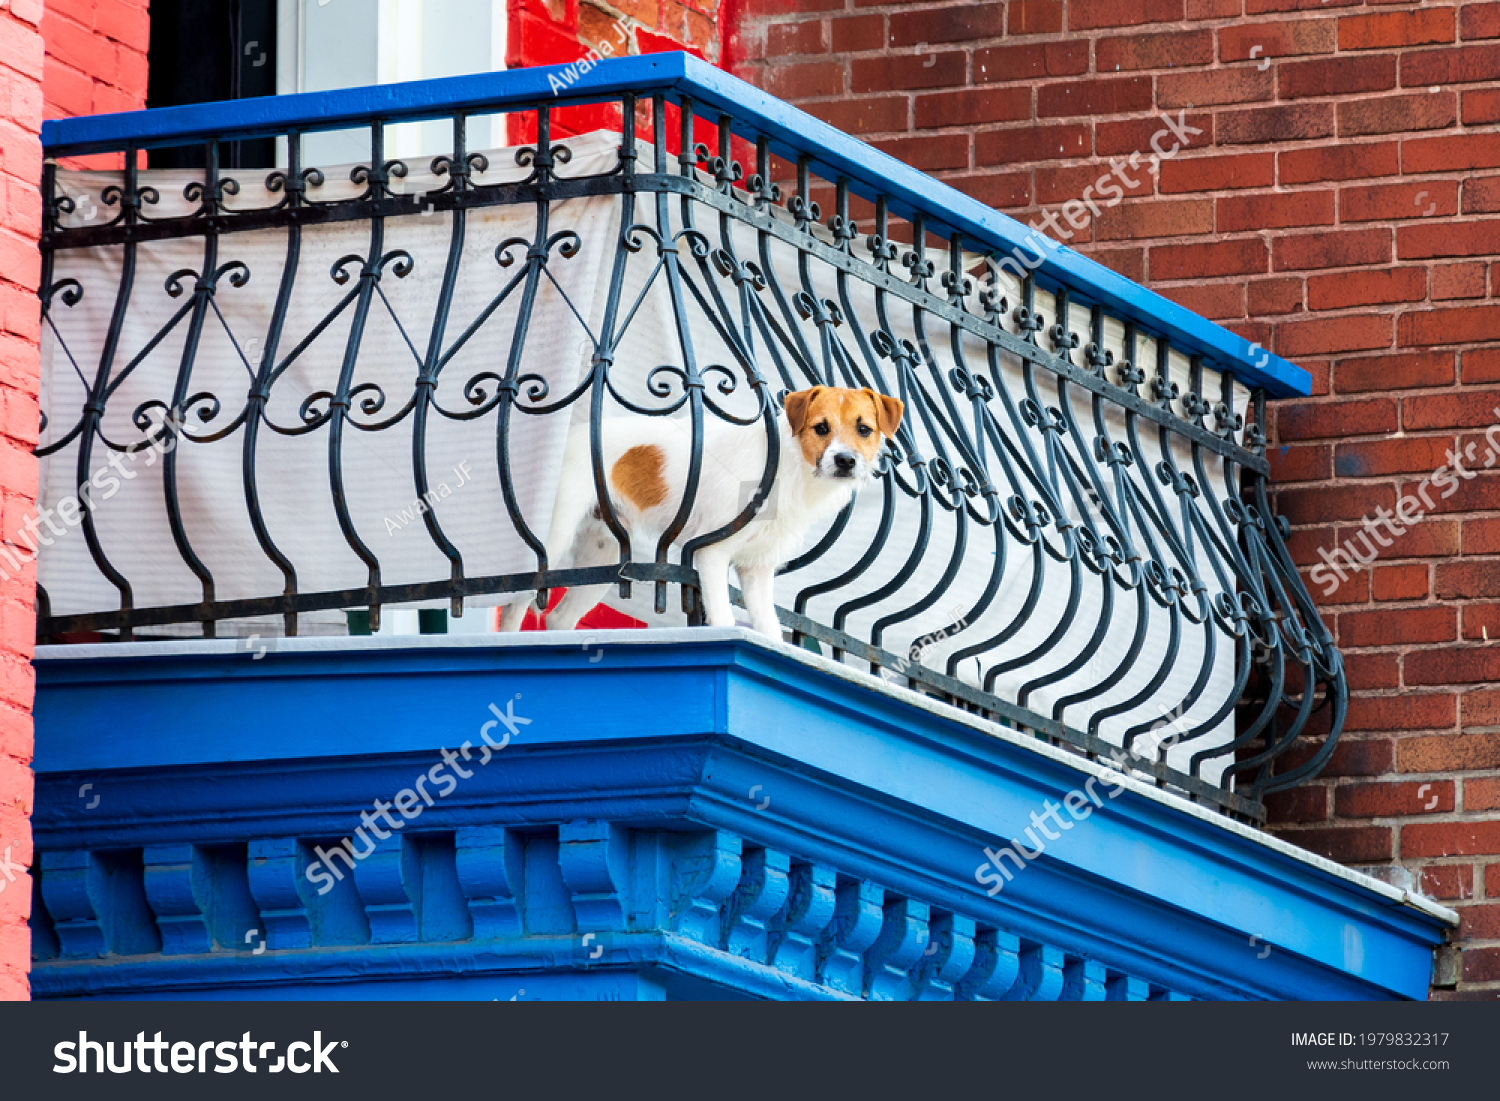 Cute  Jack Russell Terrier curiously looking through a metal railing on a balcony